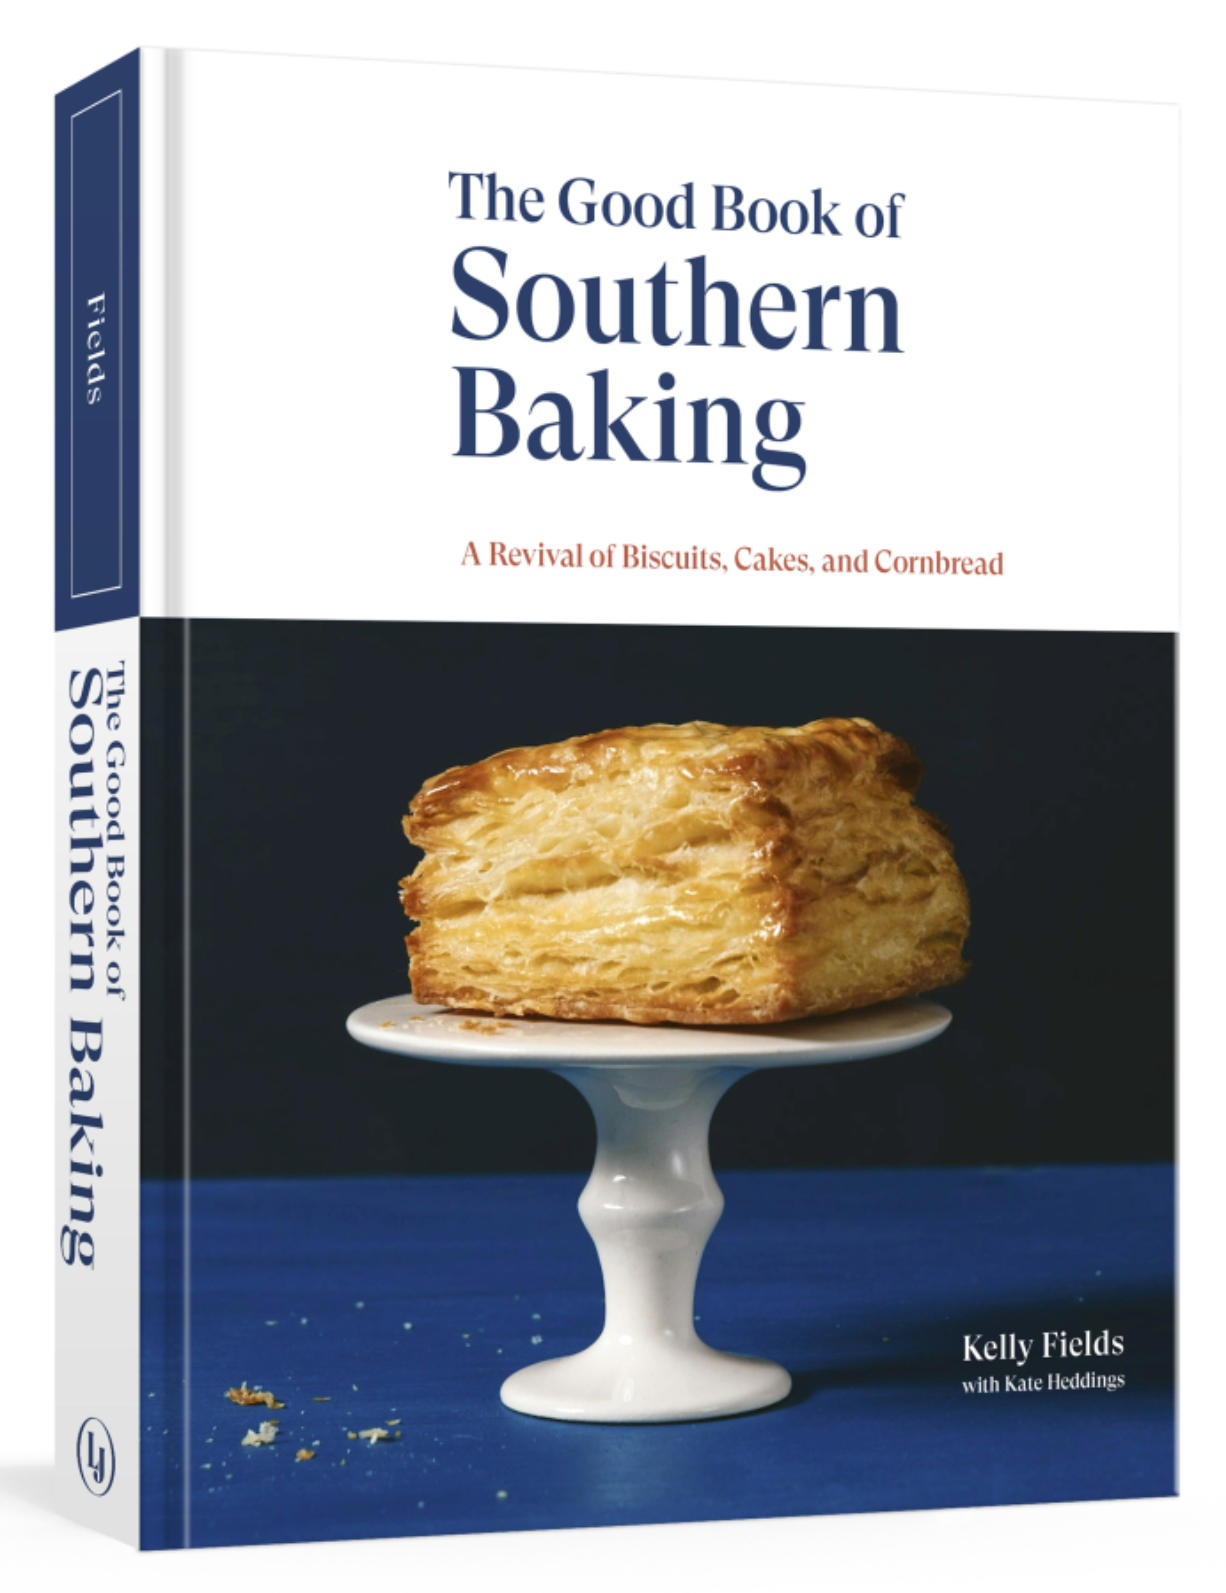 The Good Book of Southern Baking: A Revival of Biscuits, Cakes, and Cornbread (Lorena Jones Books/TNS)